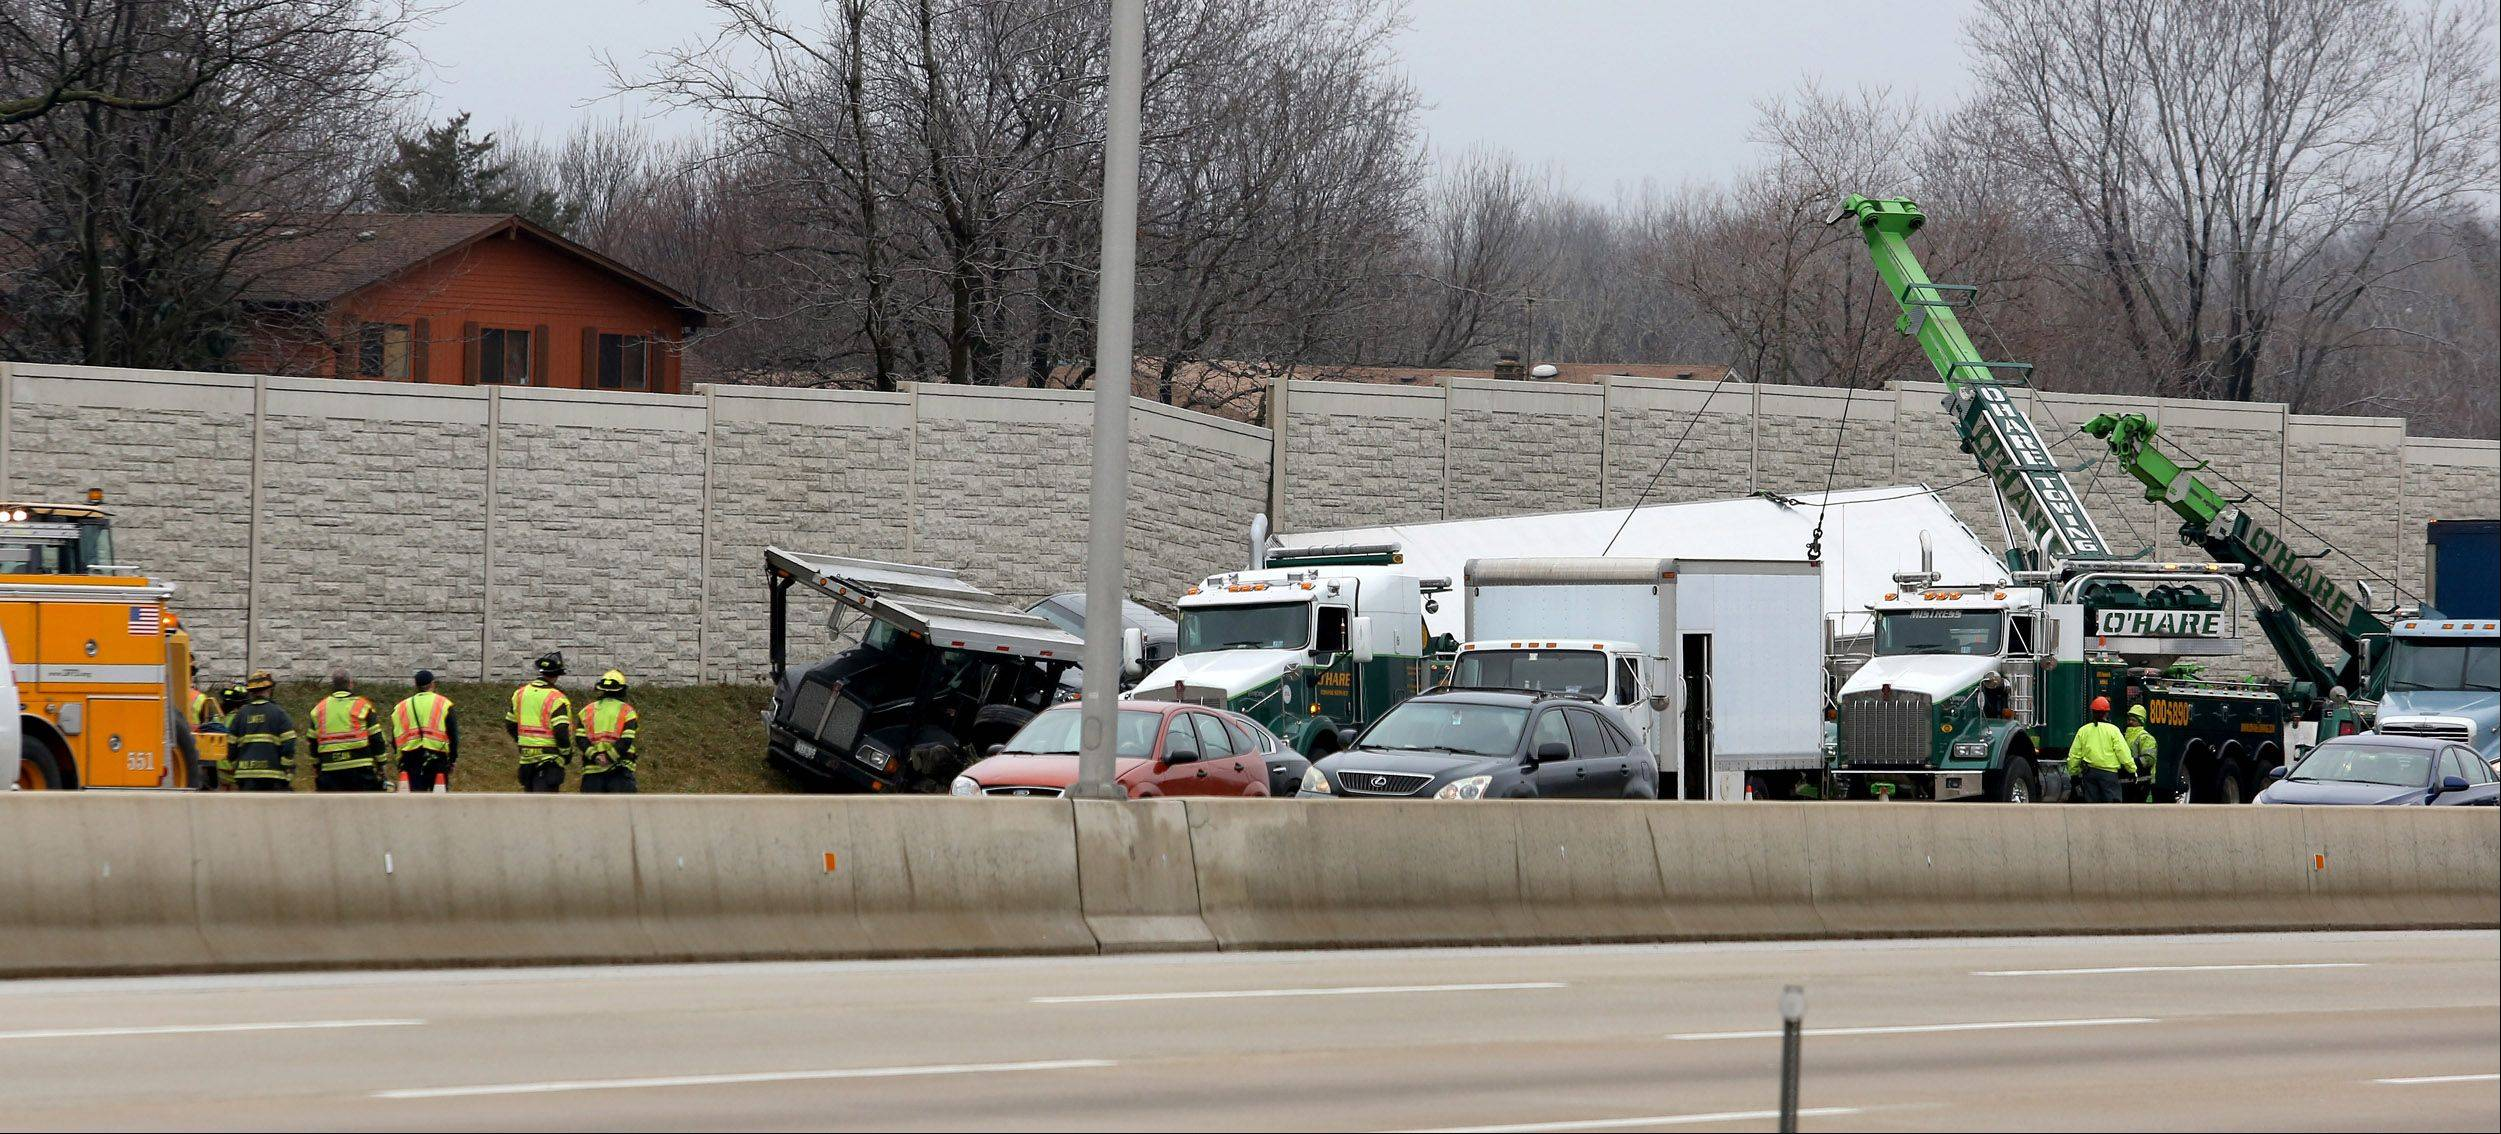 Crews work to clear away three damaged vehicles Friday along I-88 between Naperville Road and Yackley Avenue.